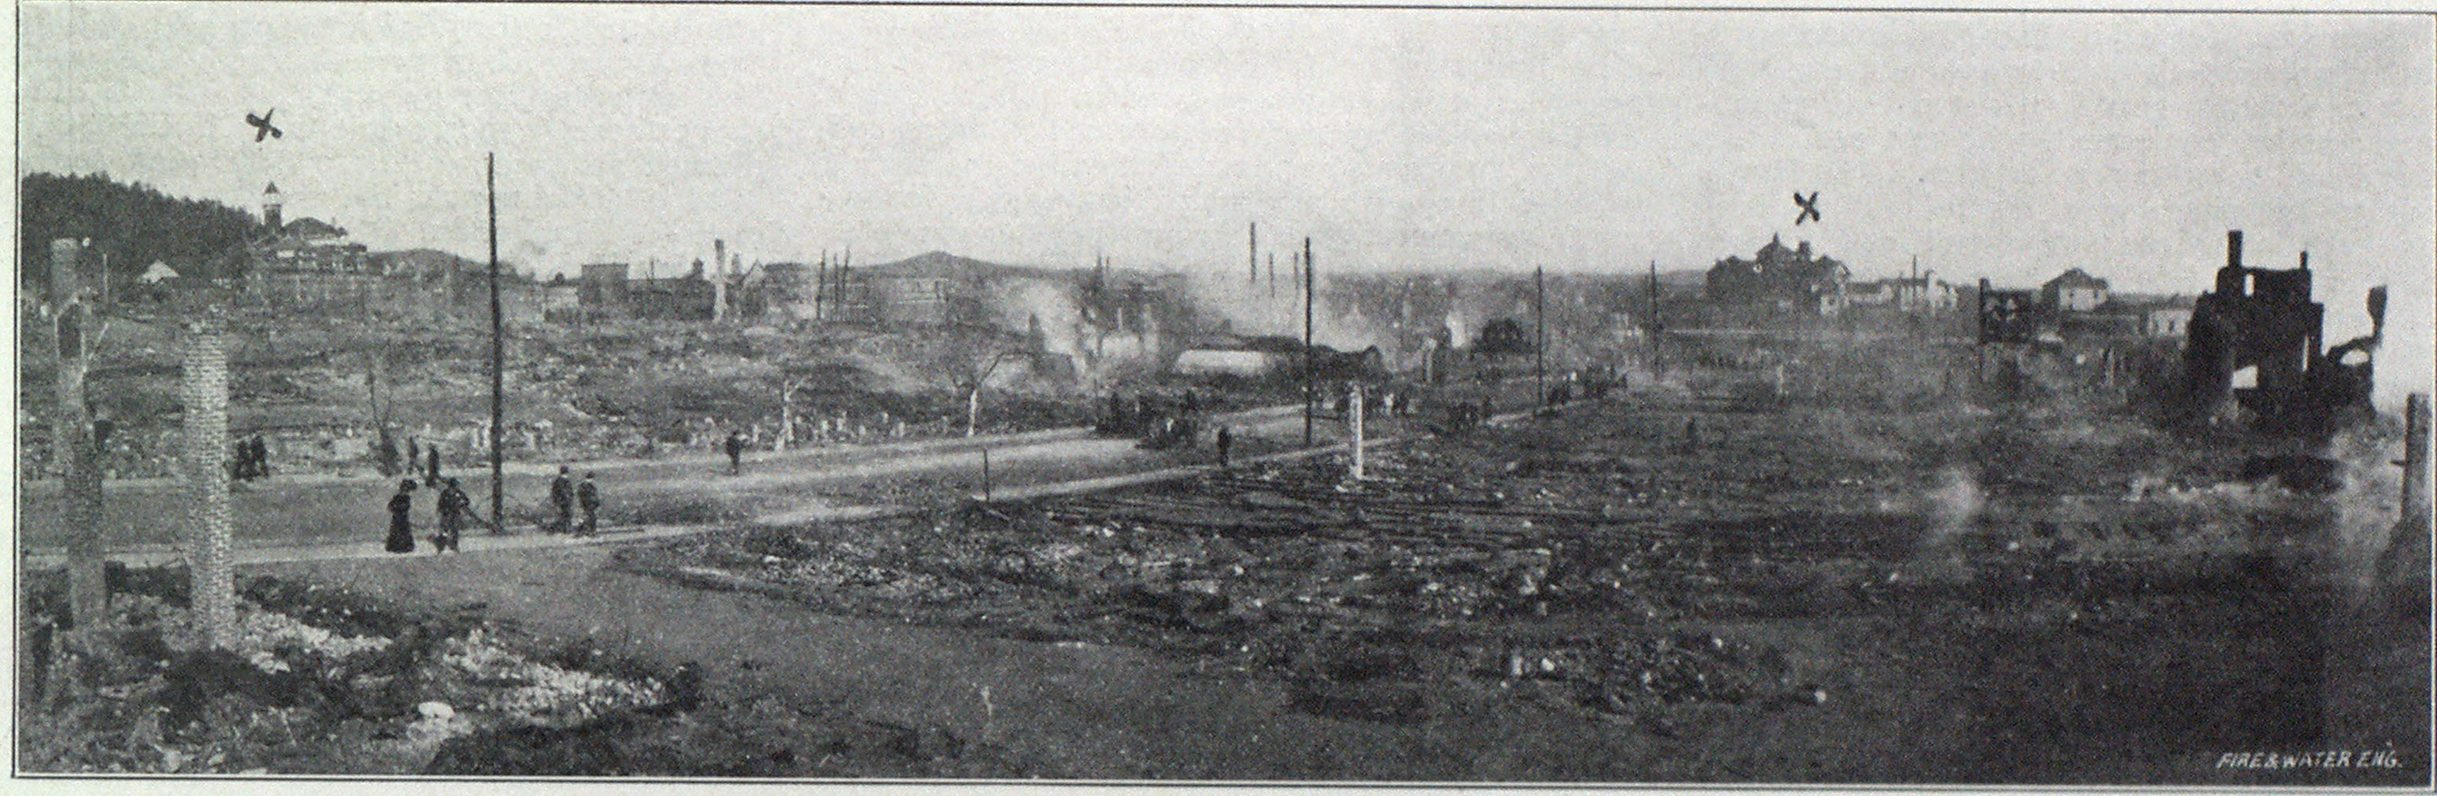 ANOTHER VIEW OF THE RUINS AT HOT SPRINGS.—CROSSES SHOW THE TWO PRINCIPAL HOTELS SAVED.